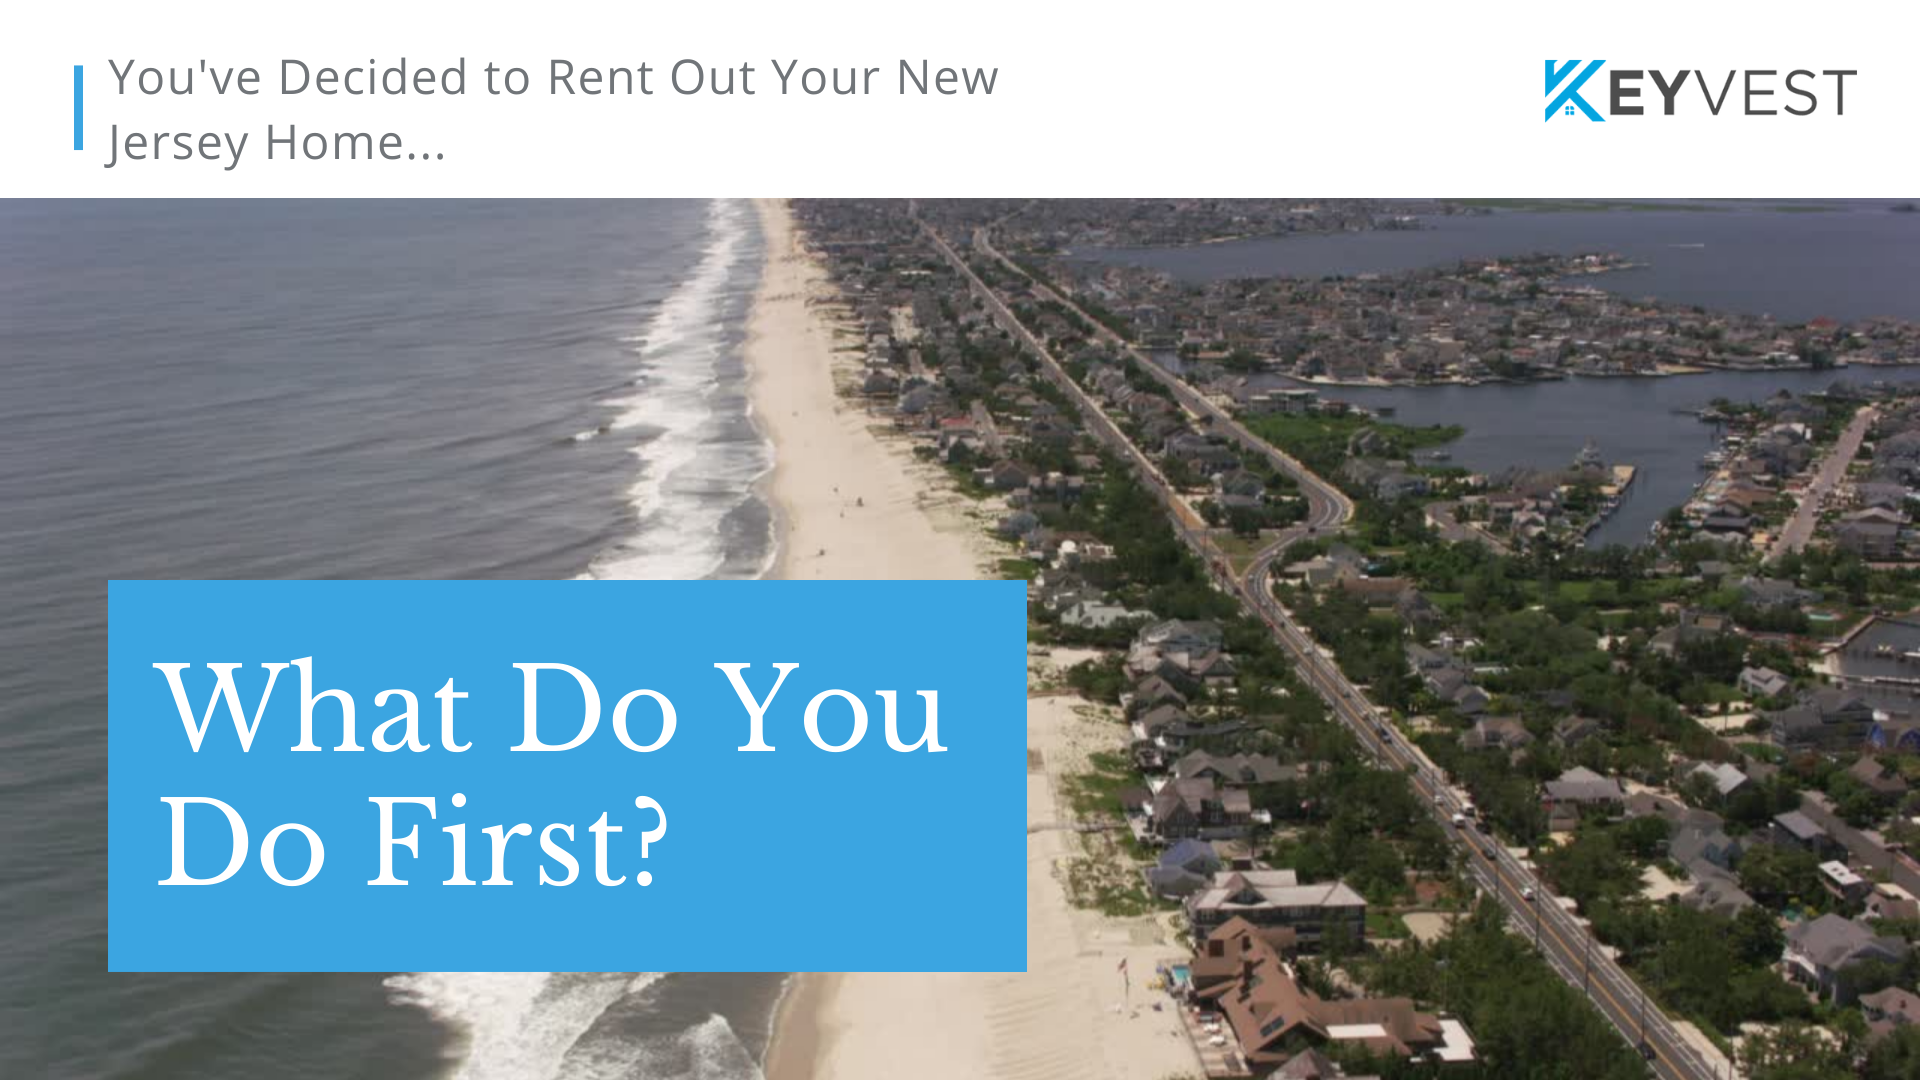 You've Decided to Rent Out Your New Jersey Property, What Do You Do First?